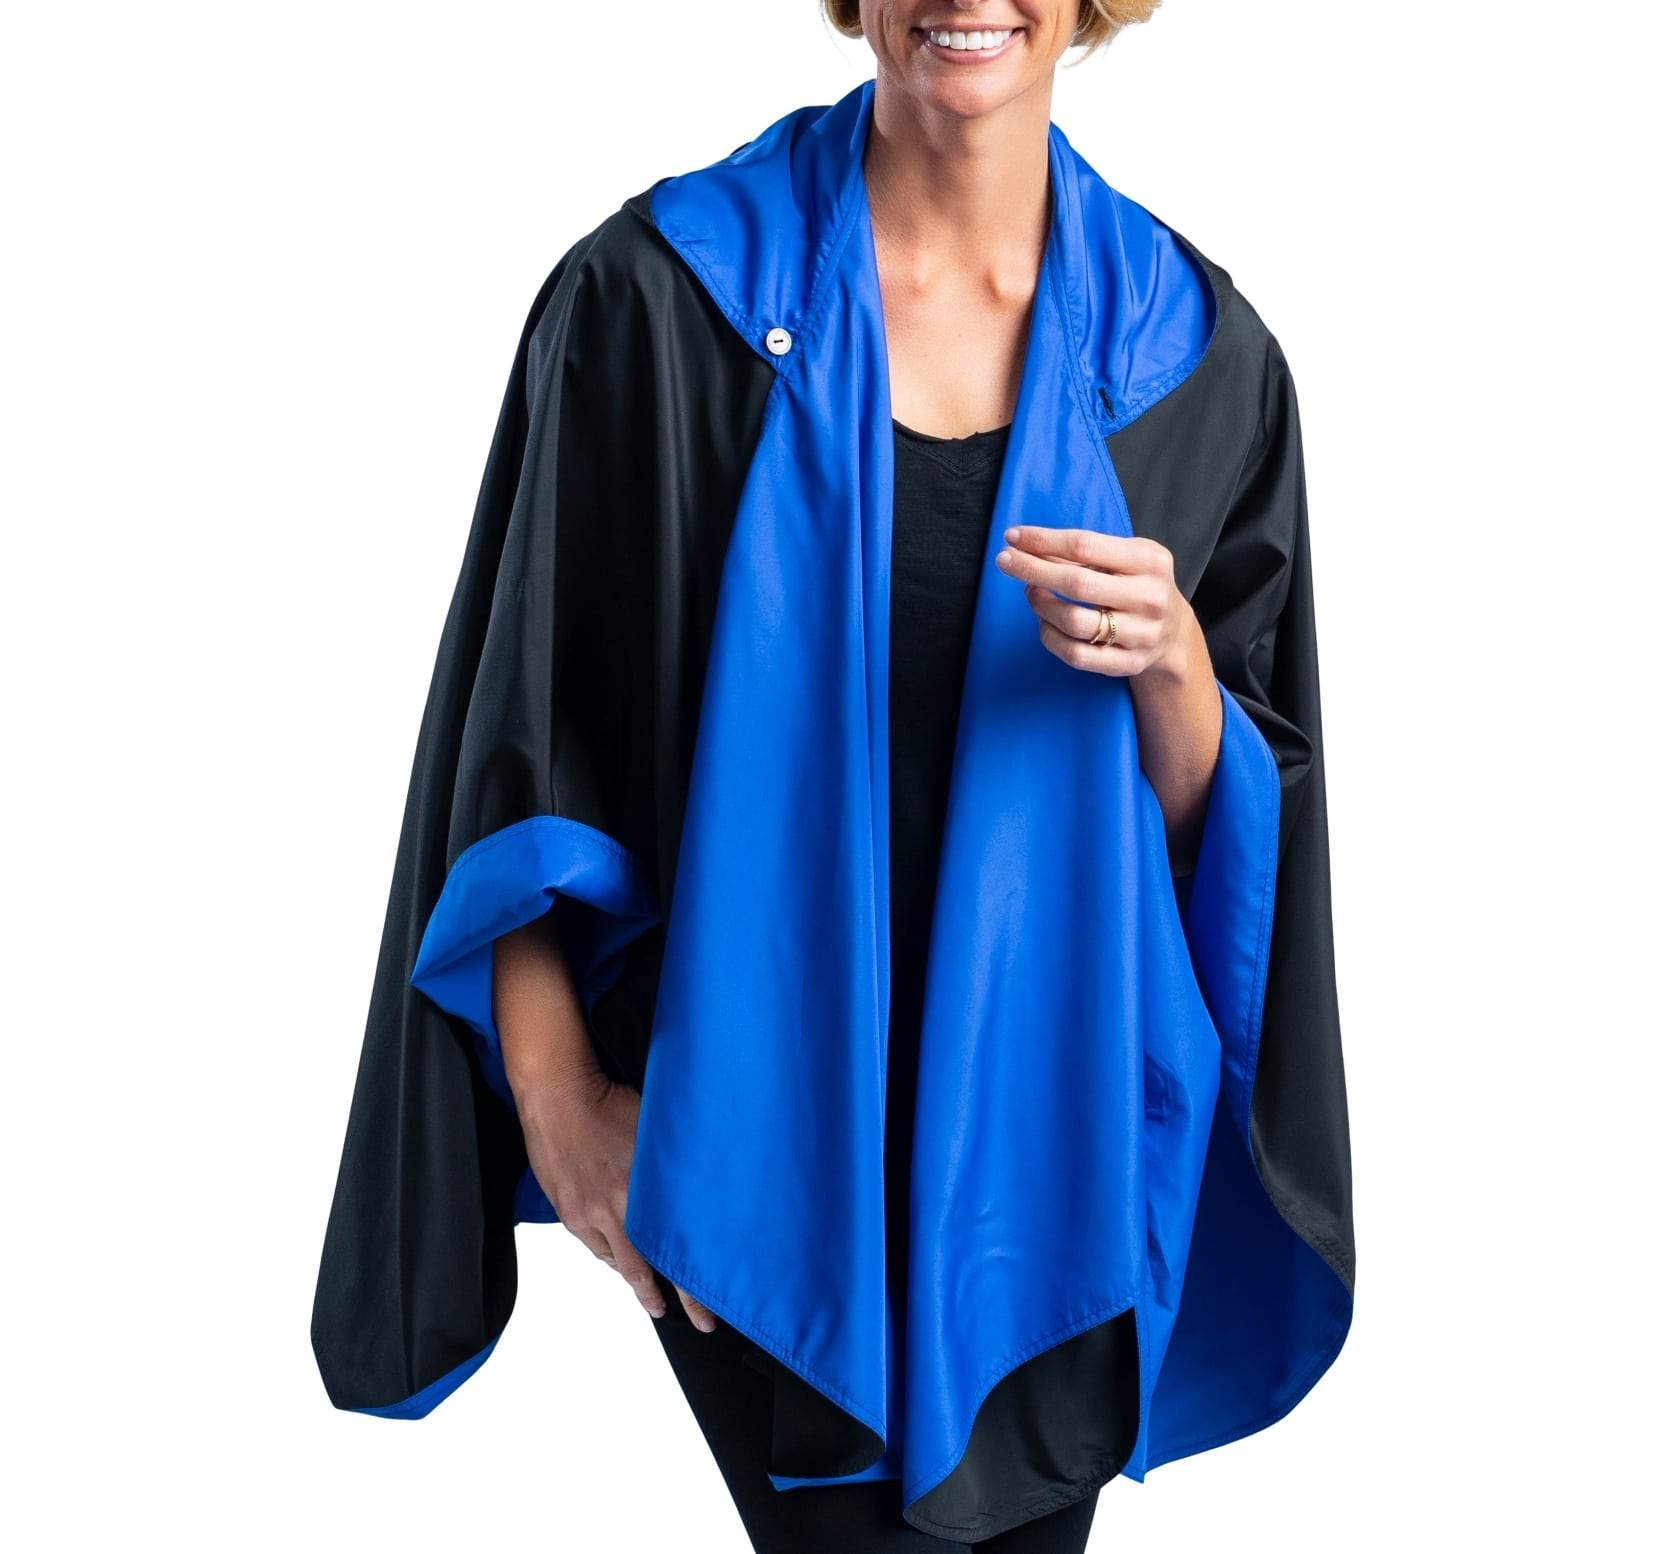 RainCaper Black/Royal Blue Travel Cape & Womens Rain Coat